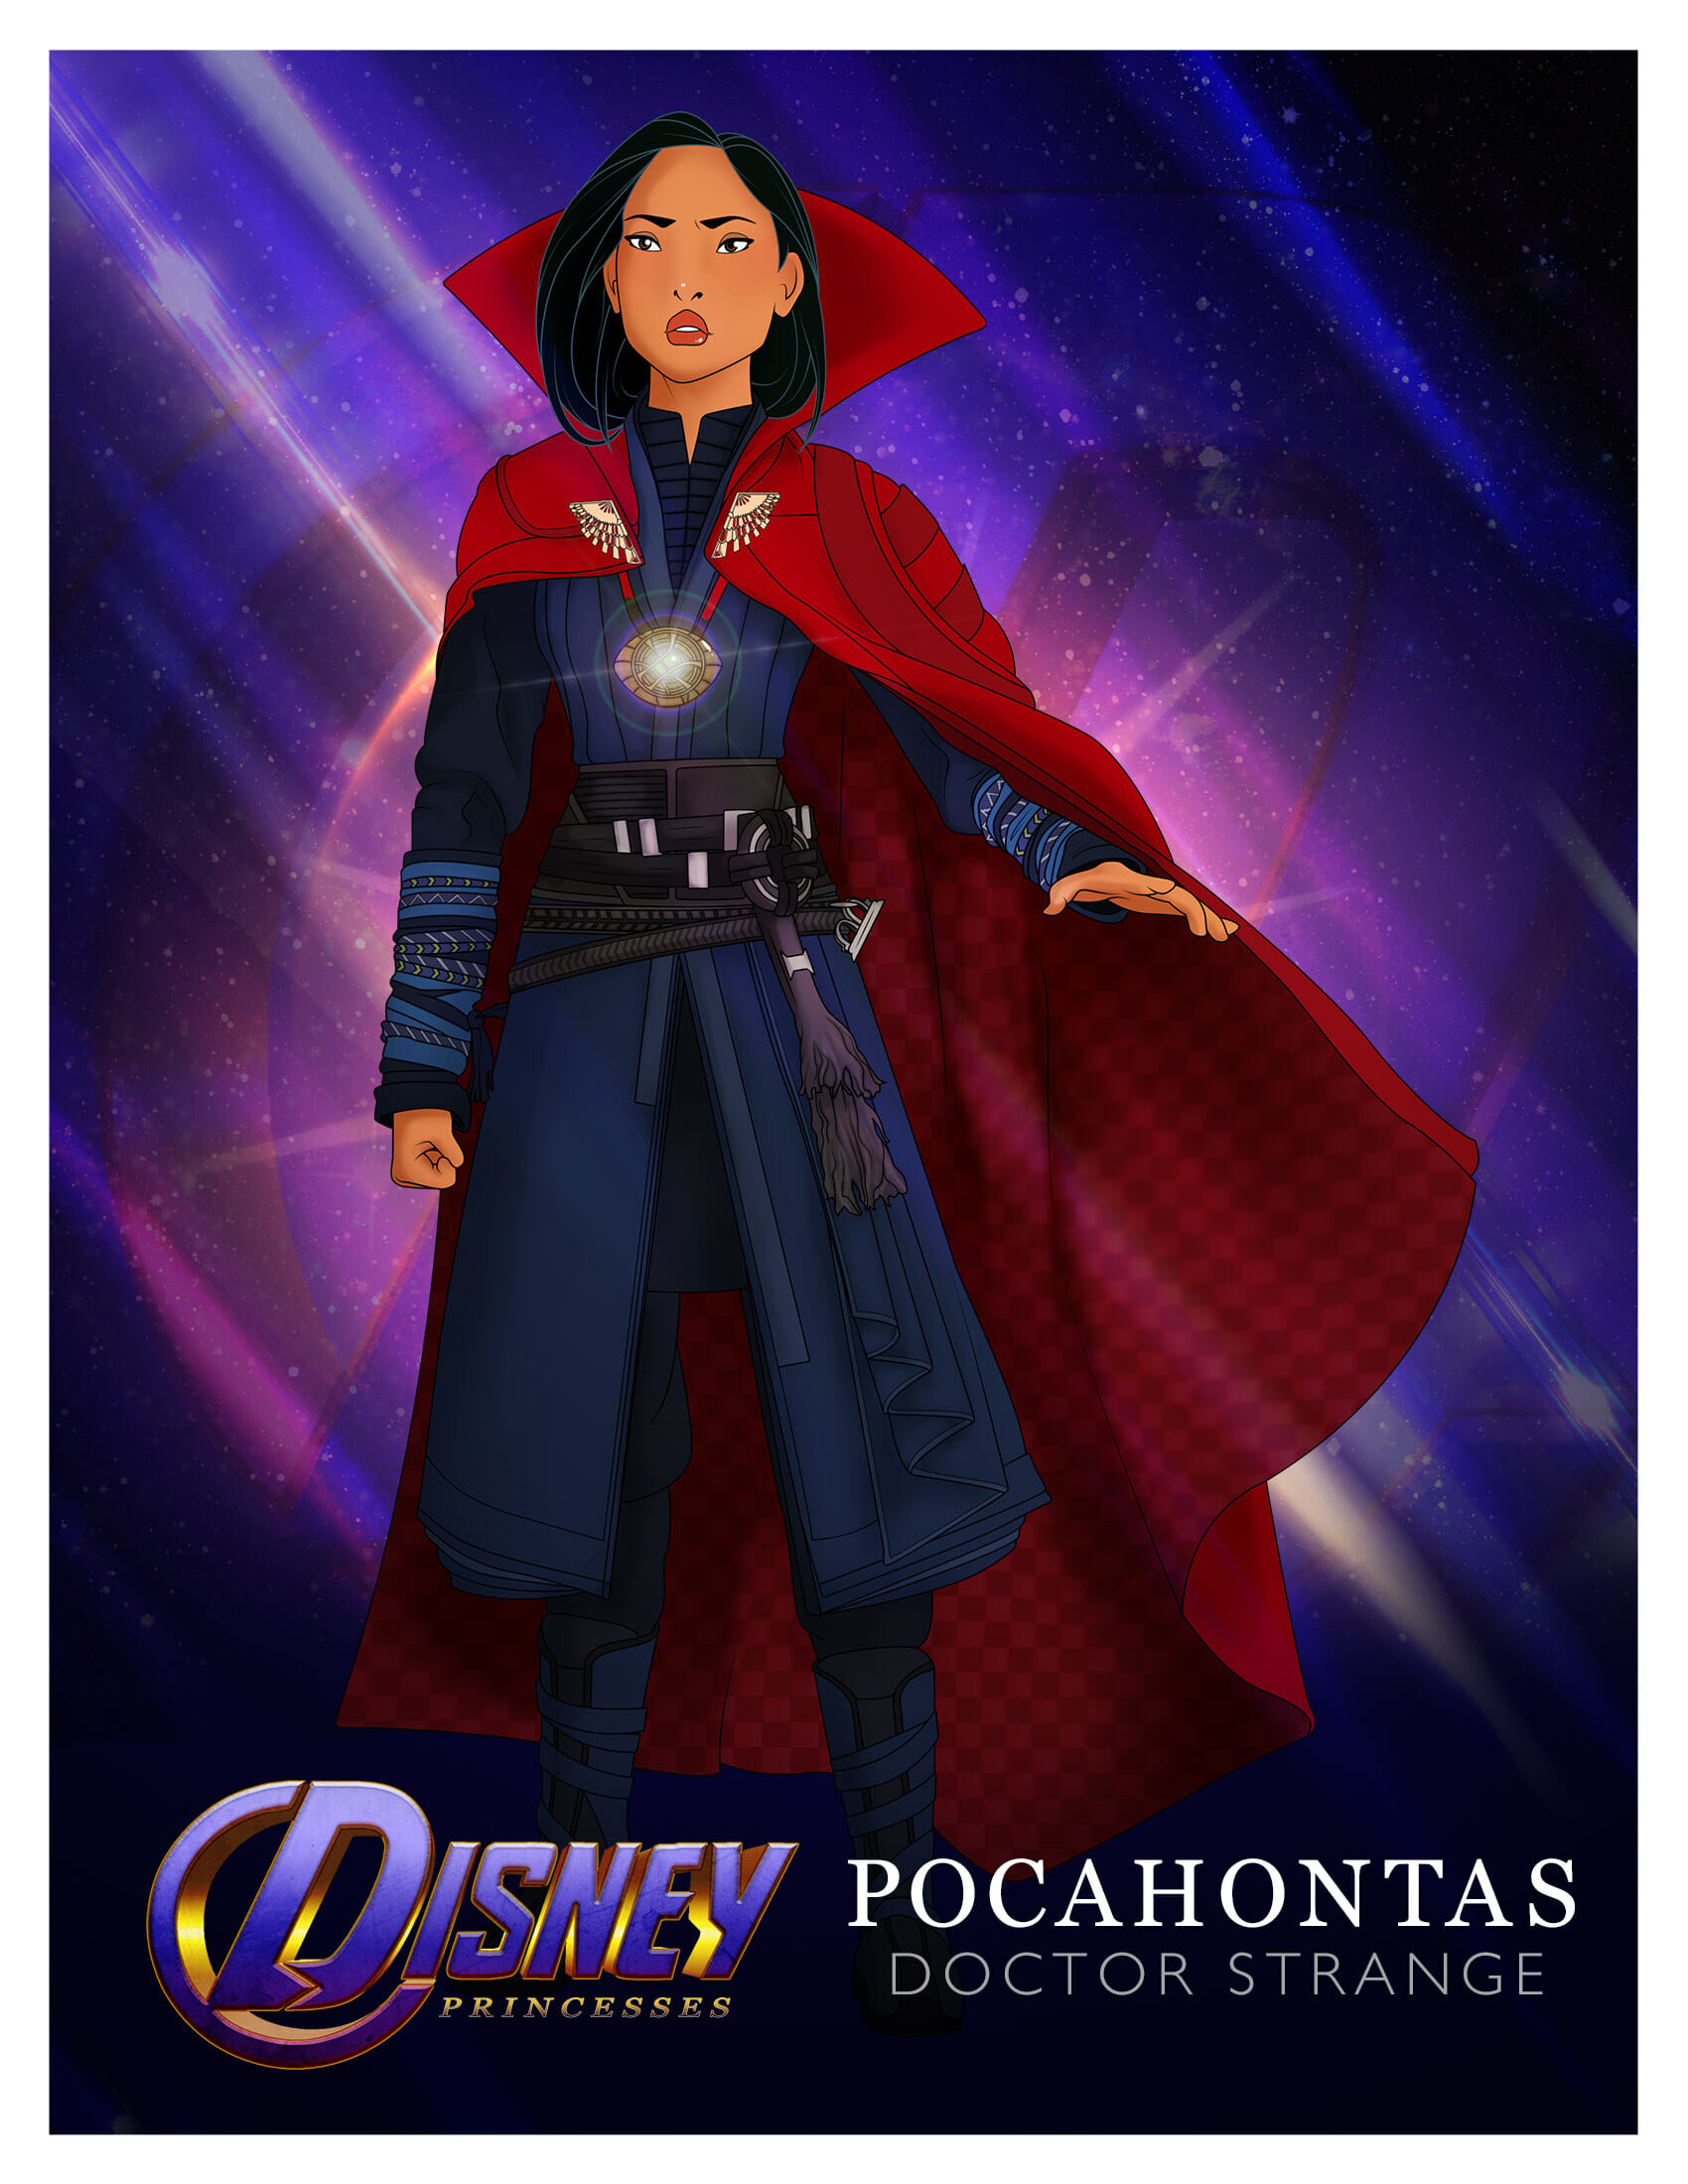 Princess Pocahontas as Doctor Strange